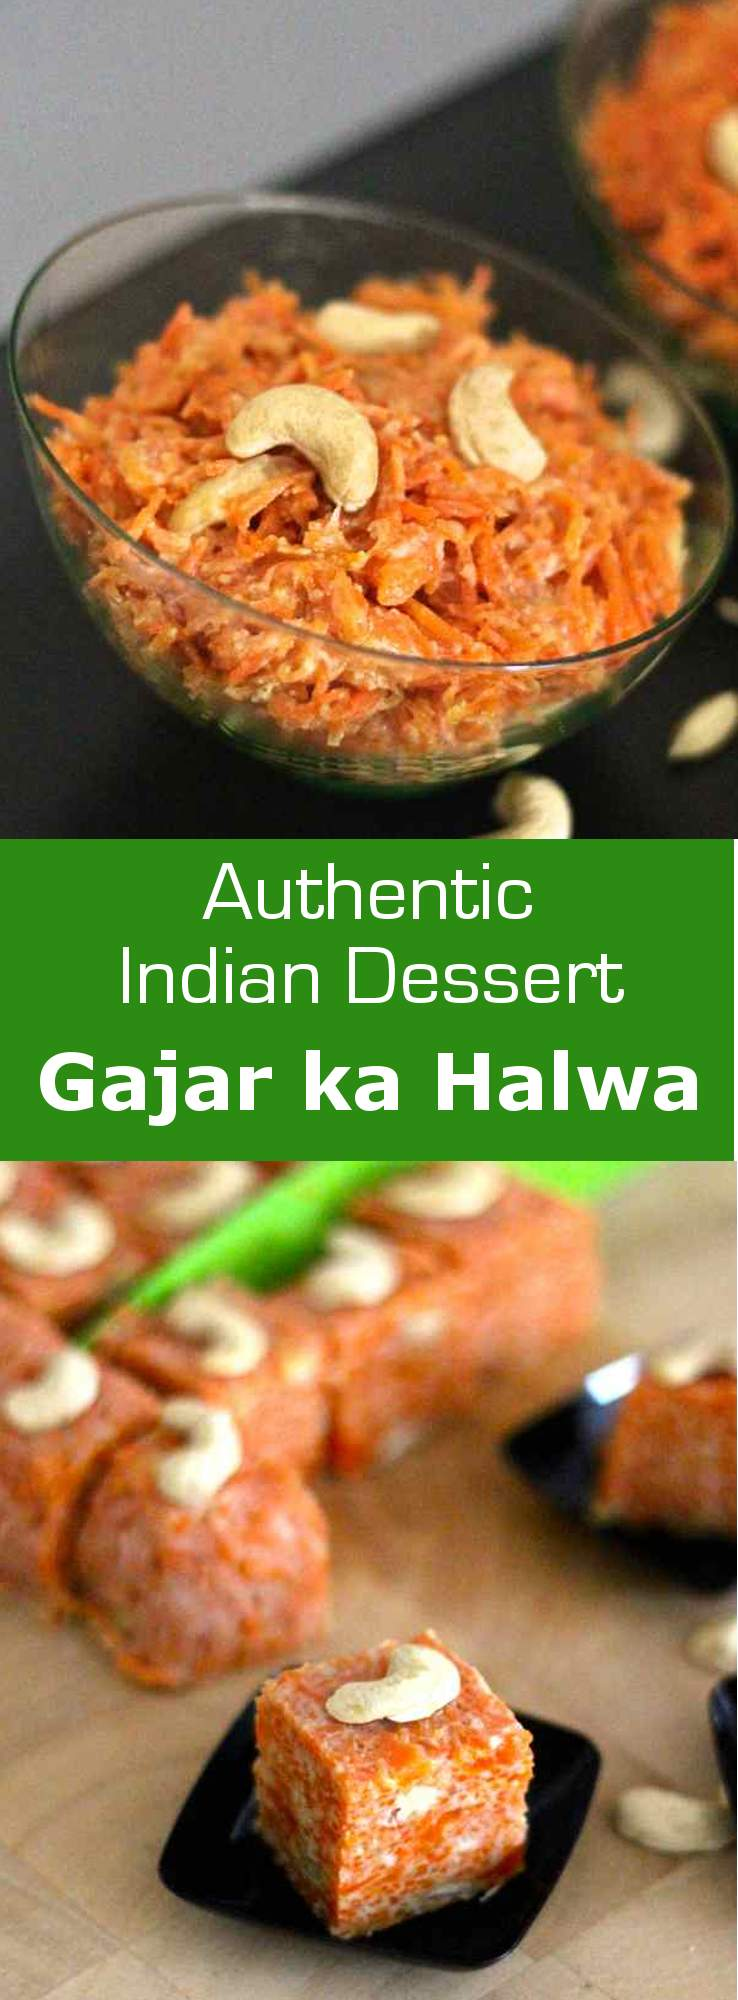 Gajar ka halwa or gajrela is a famous traditional Indian dessert made of carrots, khoya, cardamom and cashew nuts. #dessert #vegetarian #india #196flavors